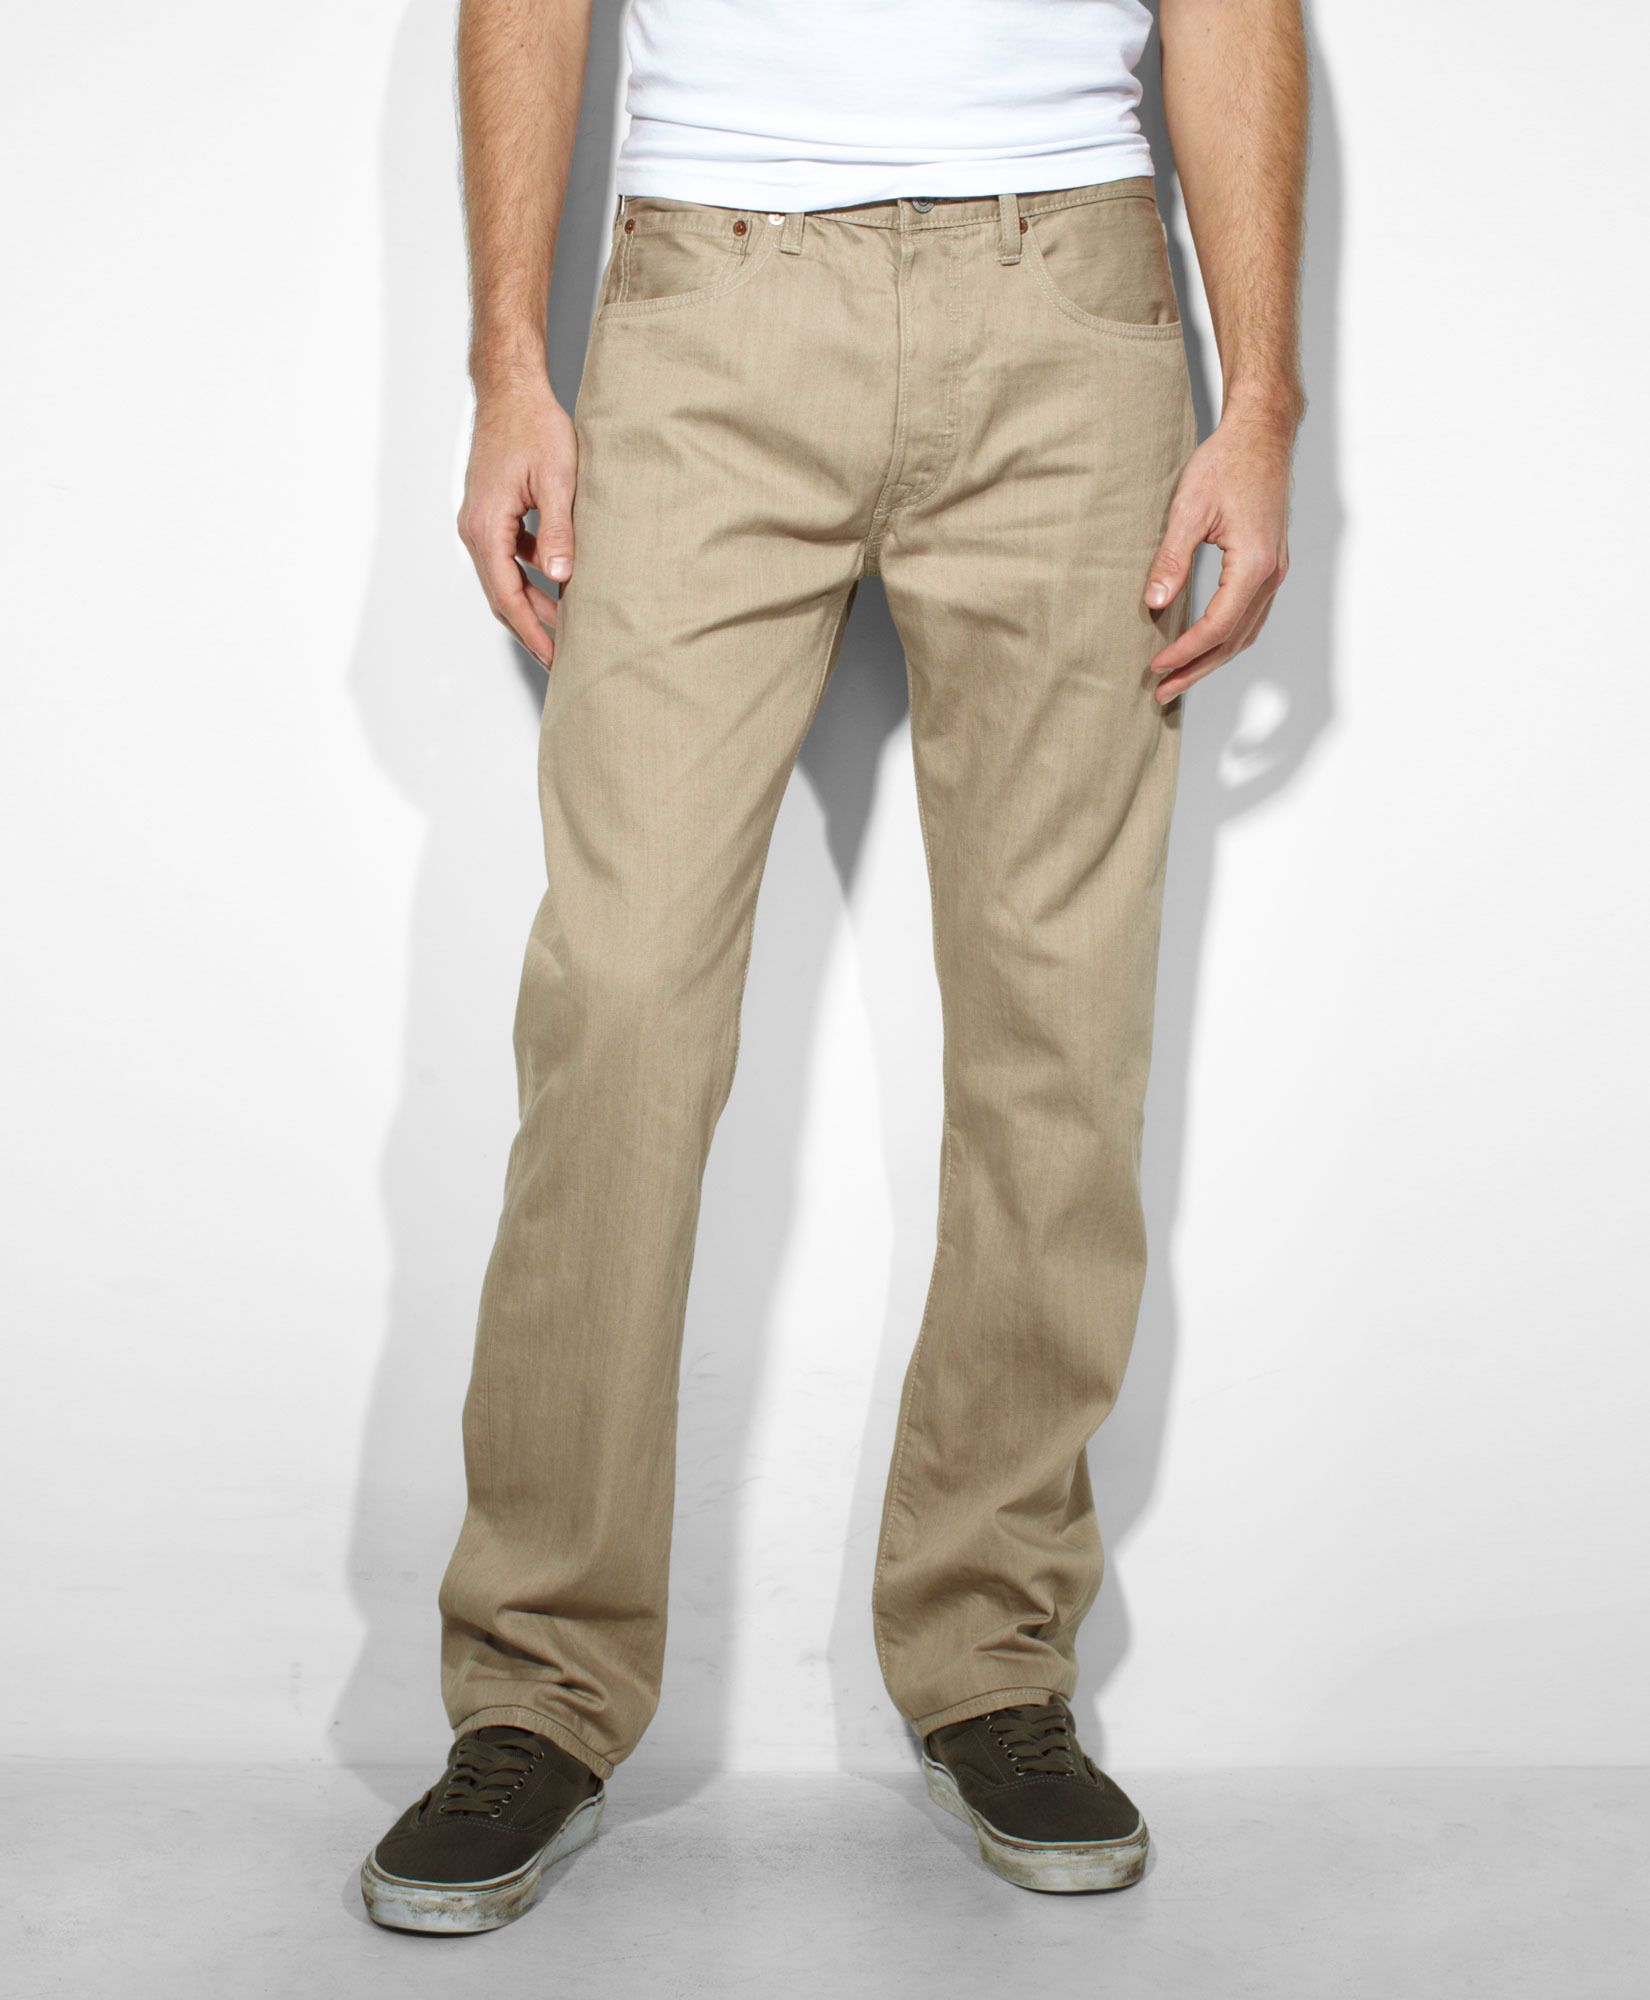 Levis 501 original fit pants true chino chino jeans